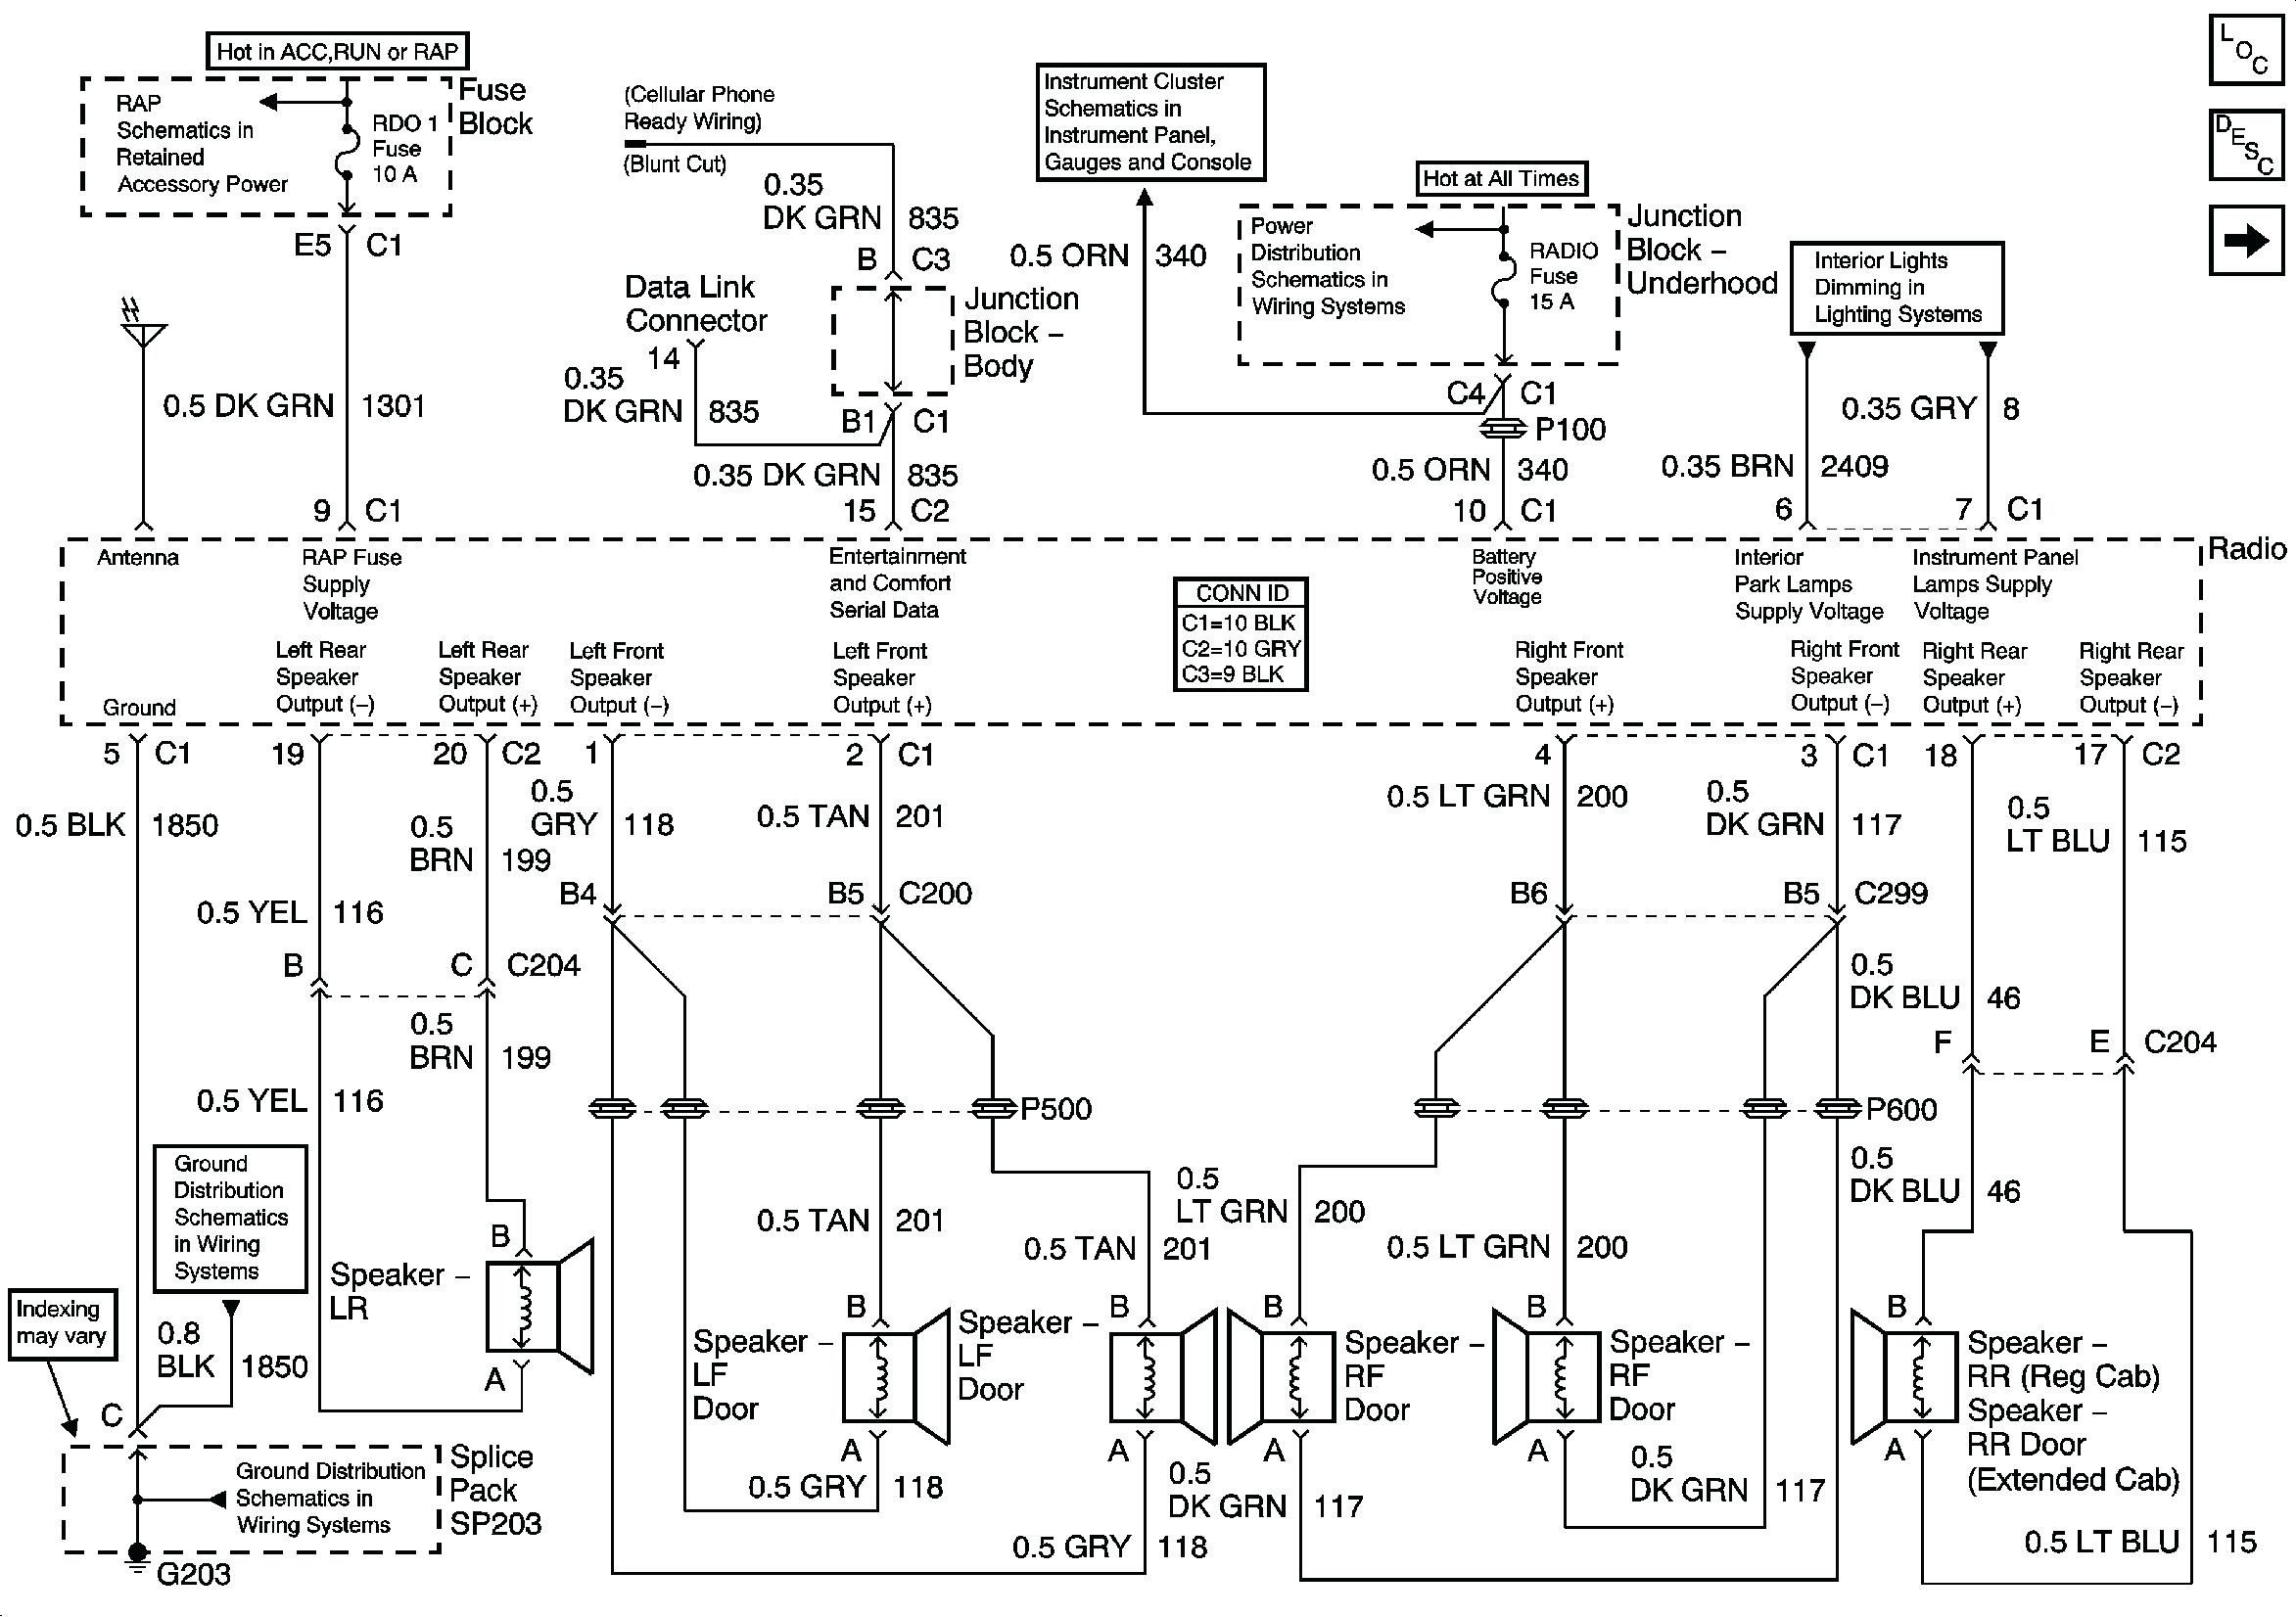 Chevy Suburban Radio Wiring Diagram Chevy Silverado Wiring Diagram Silverado Wiring Diagram New Chevy Blazer Radio Wiring T on 2005 Silverado Ignition Switch Harness T